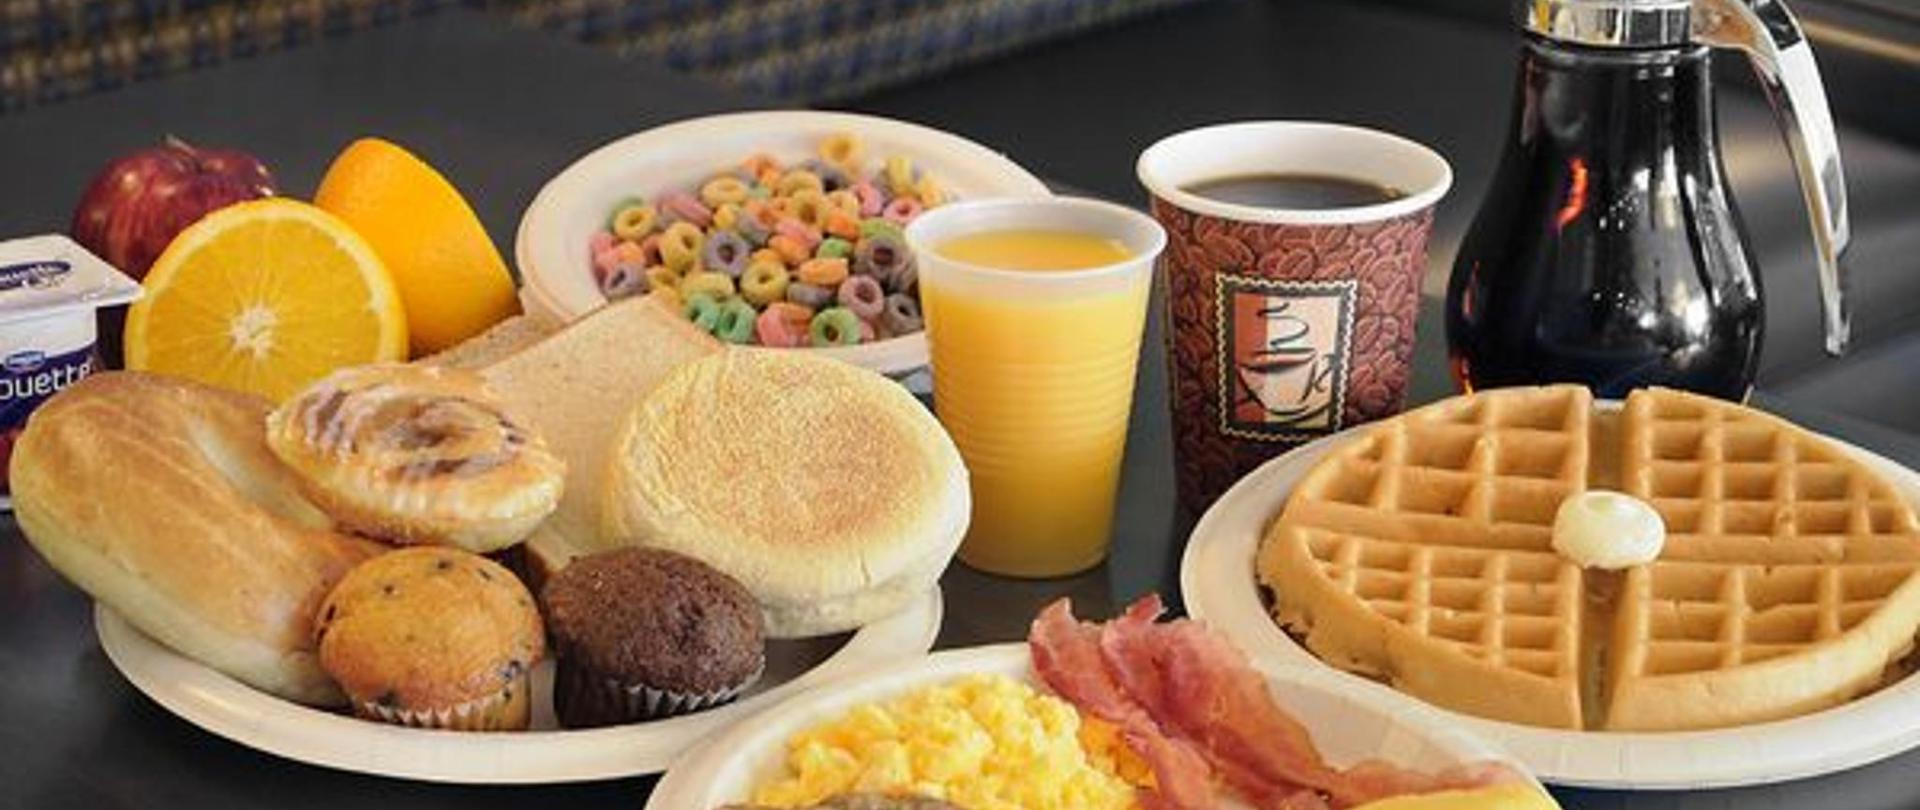 full-hot-breakfast-available-daily1.jpg